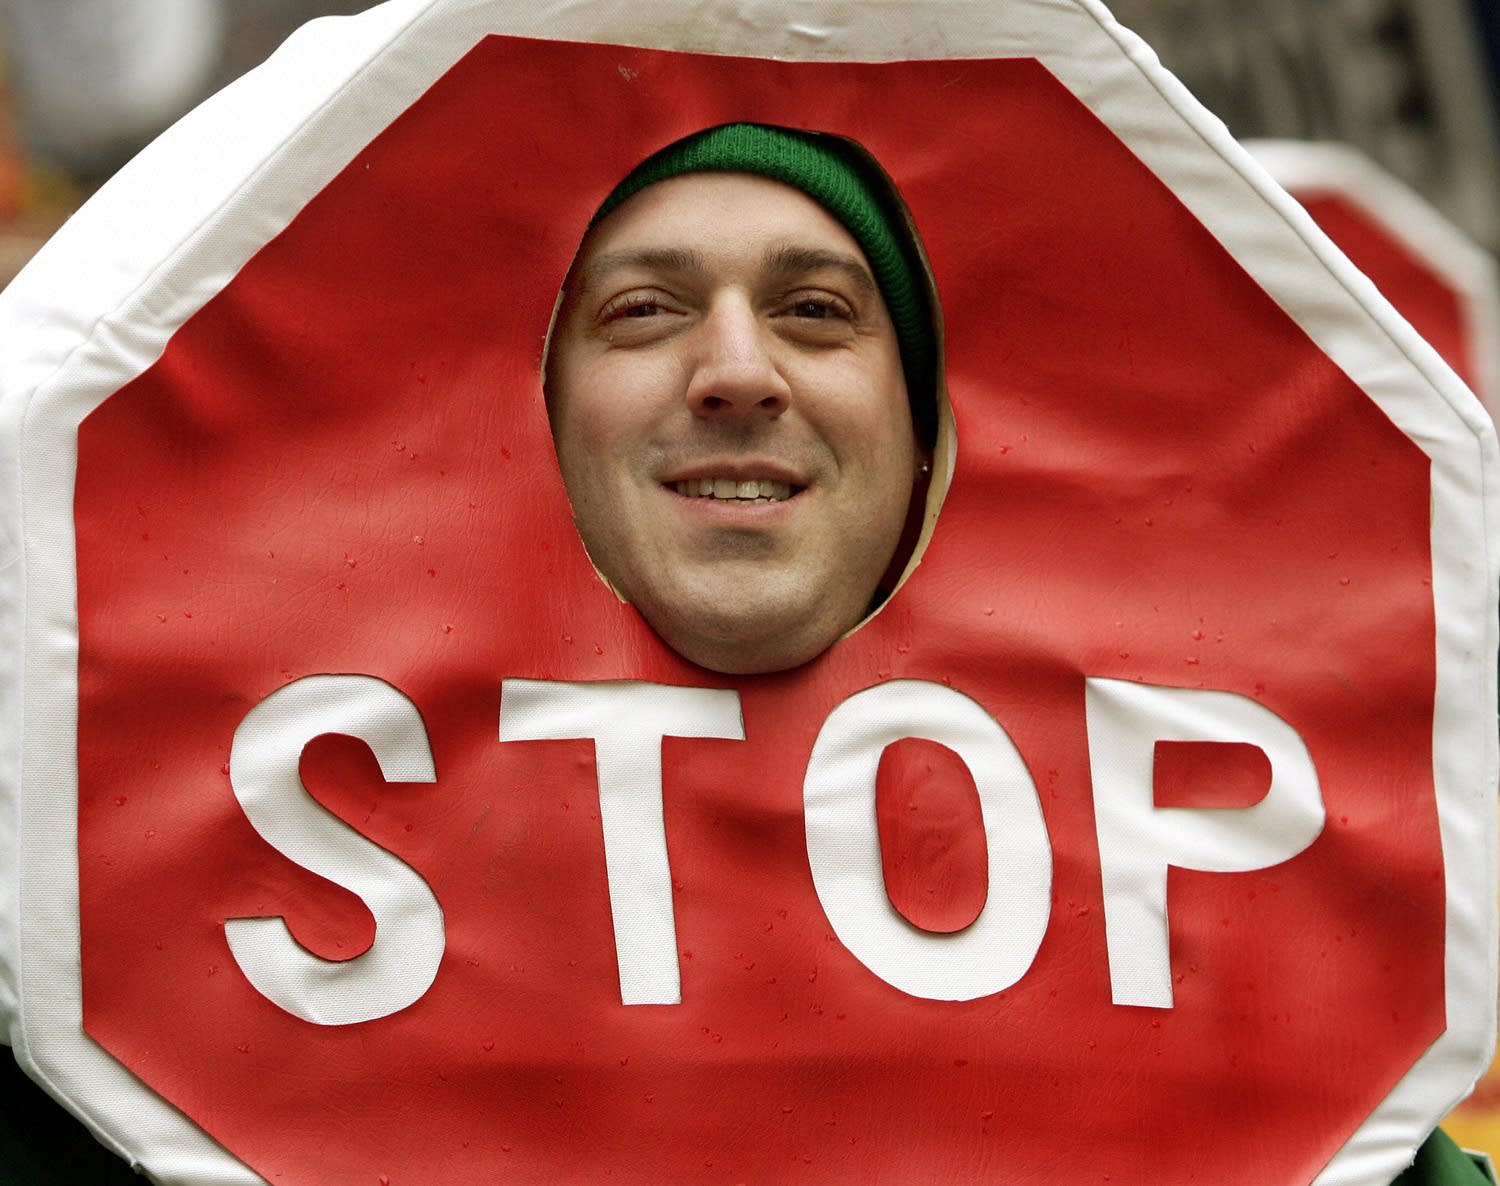 A parade marcher wearing a Stop Sign costume